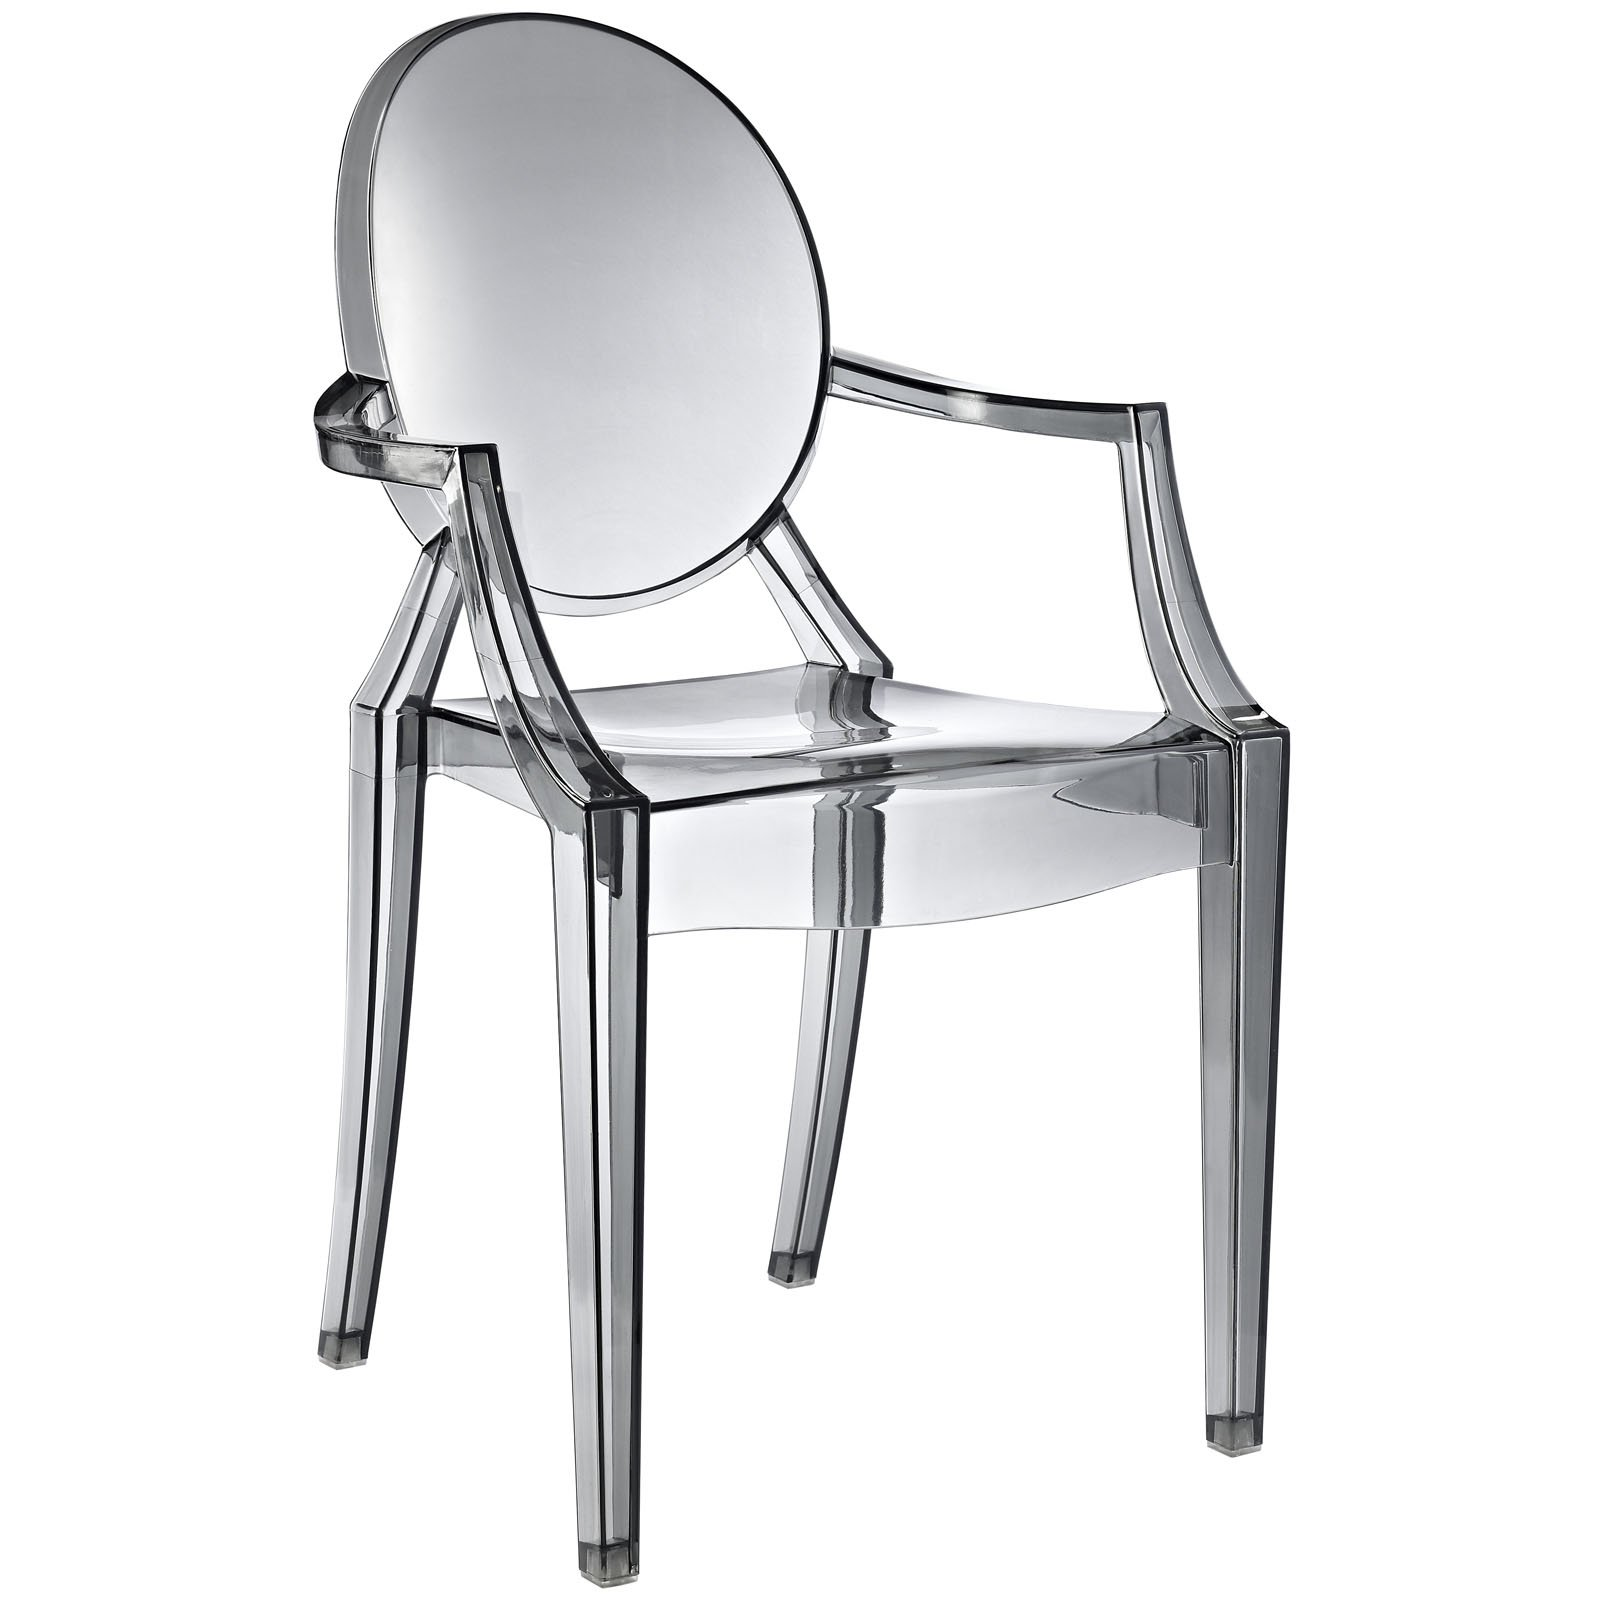 Modway Casper Modern Acrylic Dining Armchair in Smoke, 1 Chair